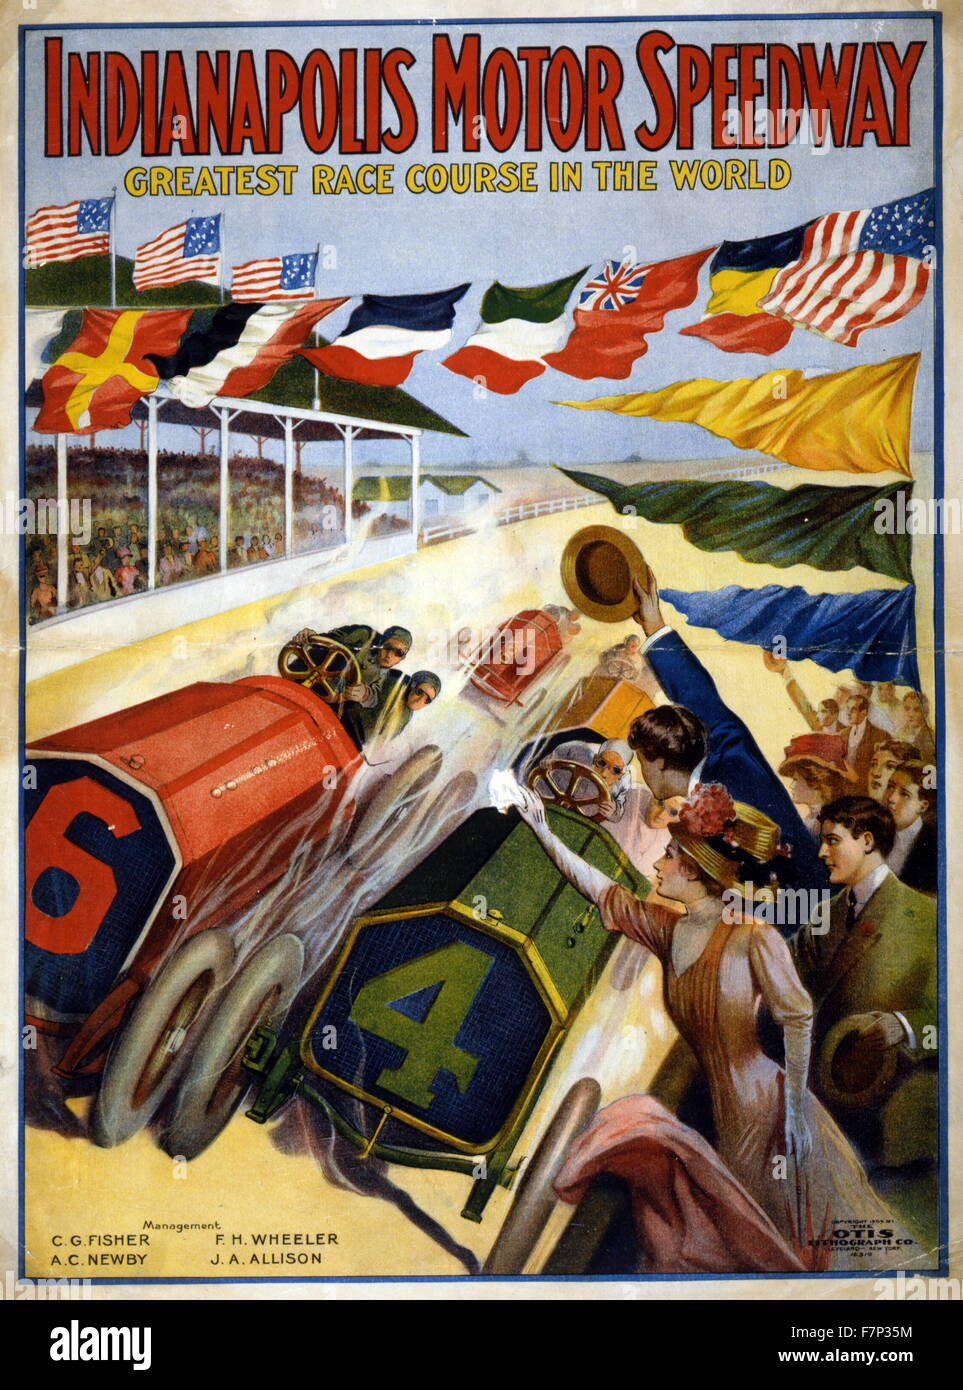 Poster for the Indianapolis Motor Speedway 1909 - Stock Image